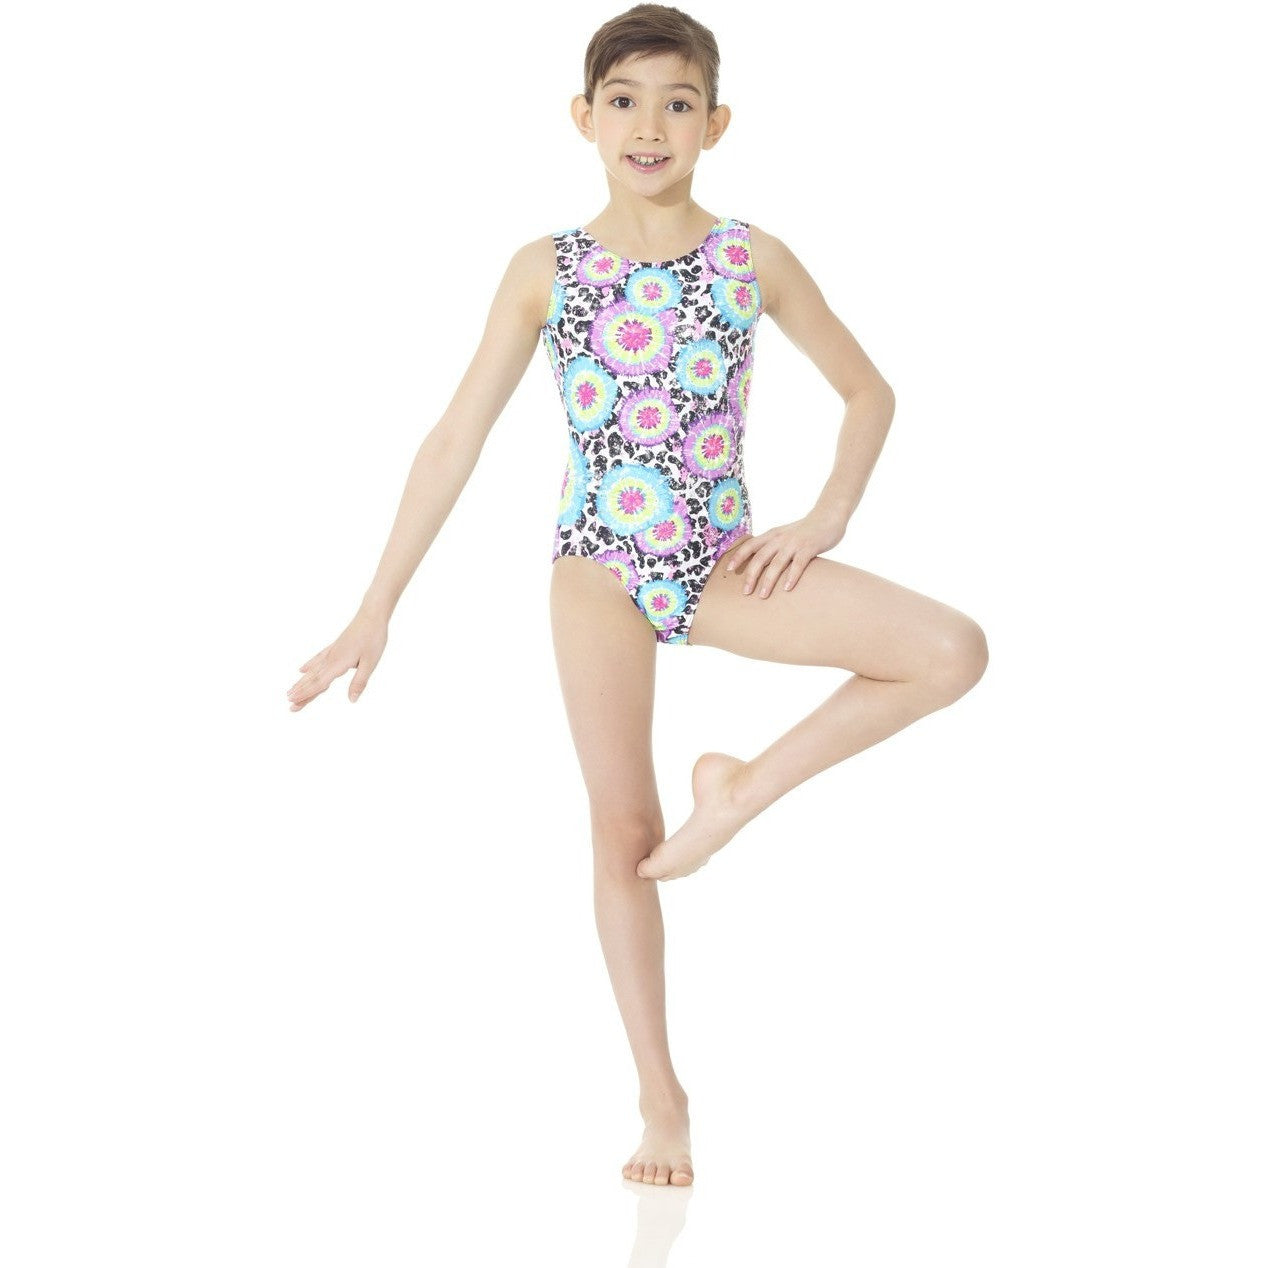 Metallic Gymnastics Leotard